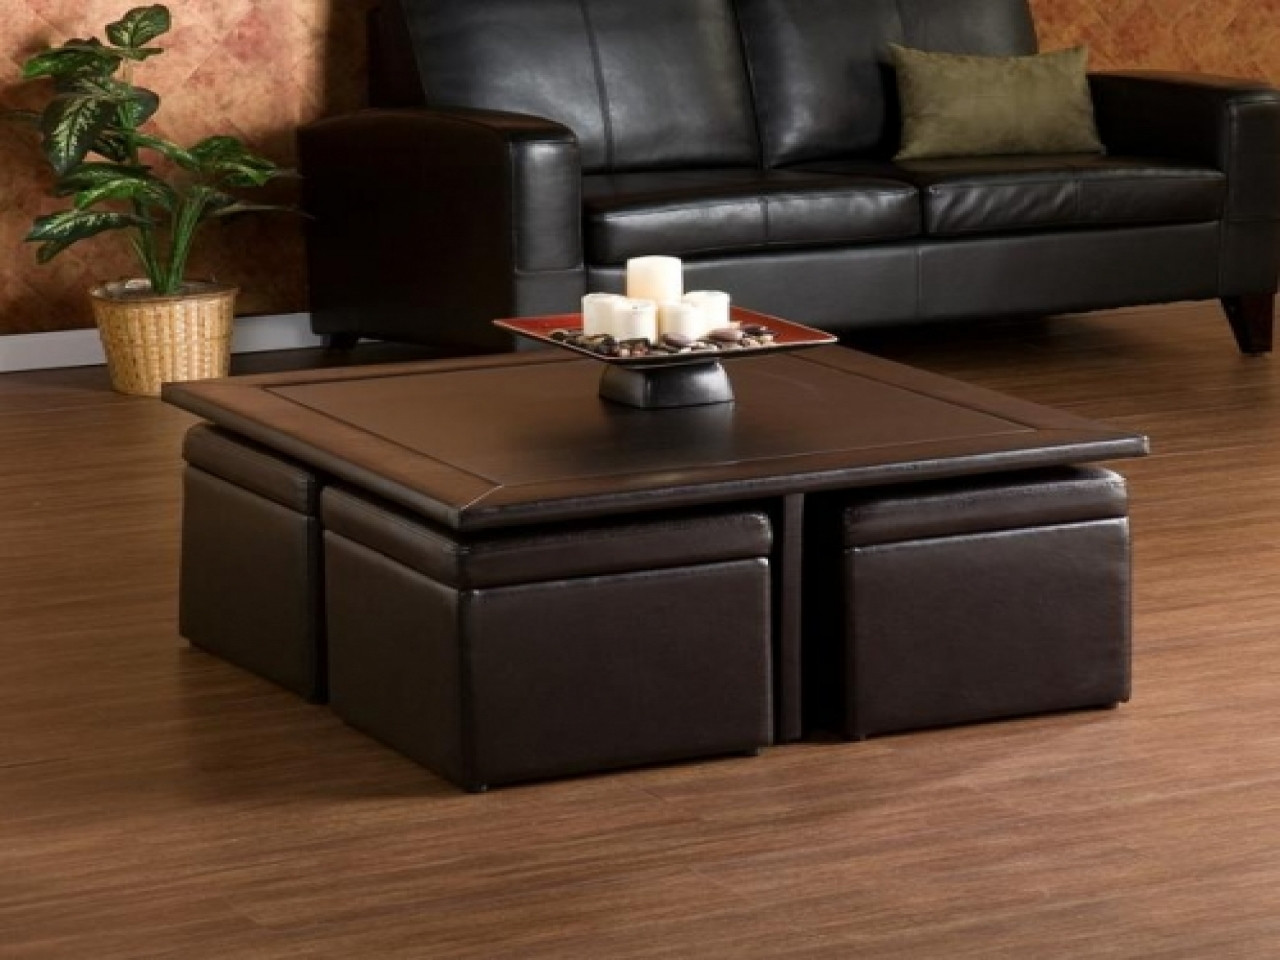 Best ideas about DIY Coffee Tables With Storage . Save or Pin Storage seating cubes diy coffee table ottoman storage Now.